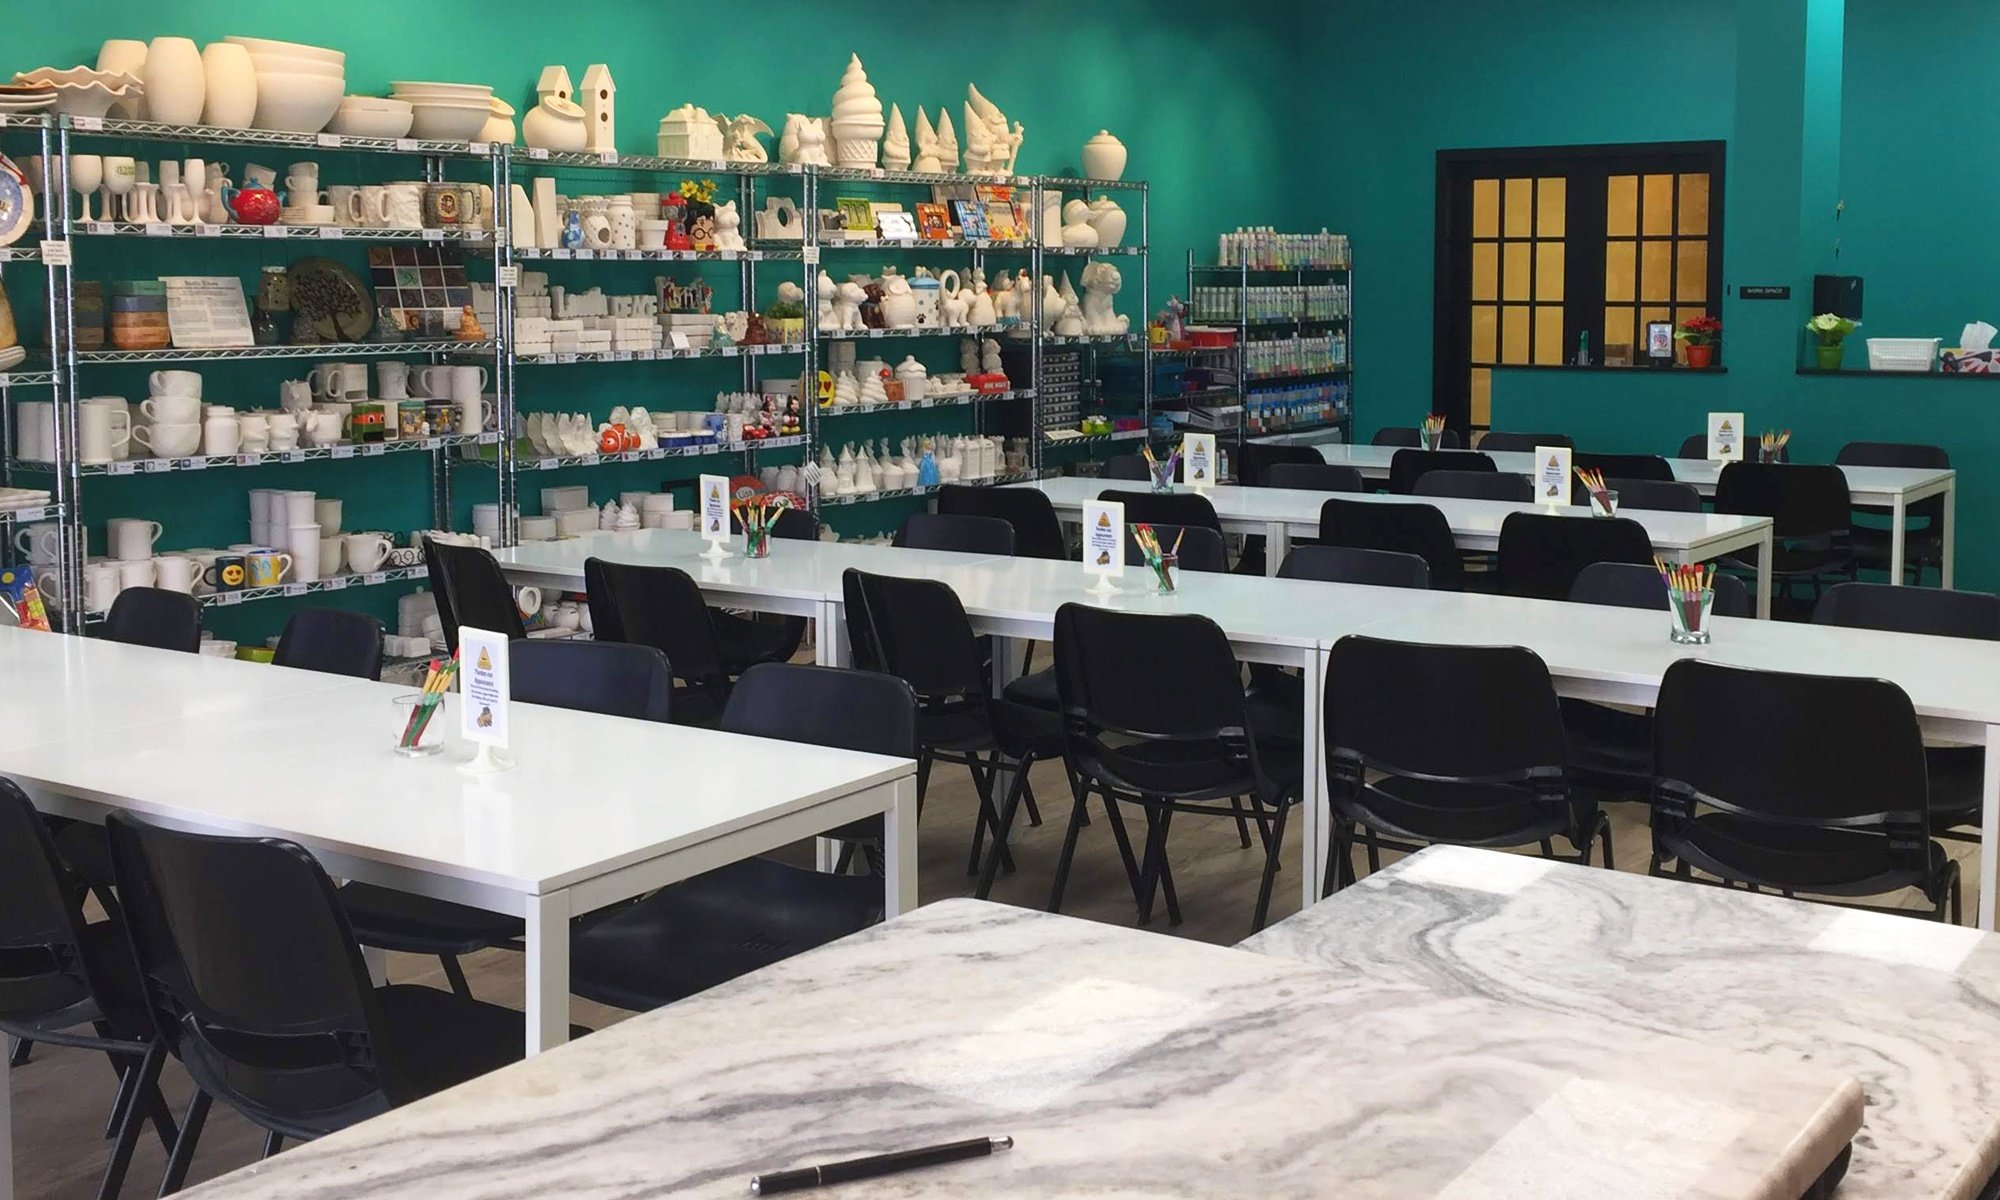 Arts & Glass: Interactive Art Studio in Clifton Park, NY